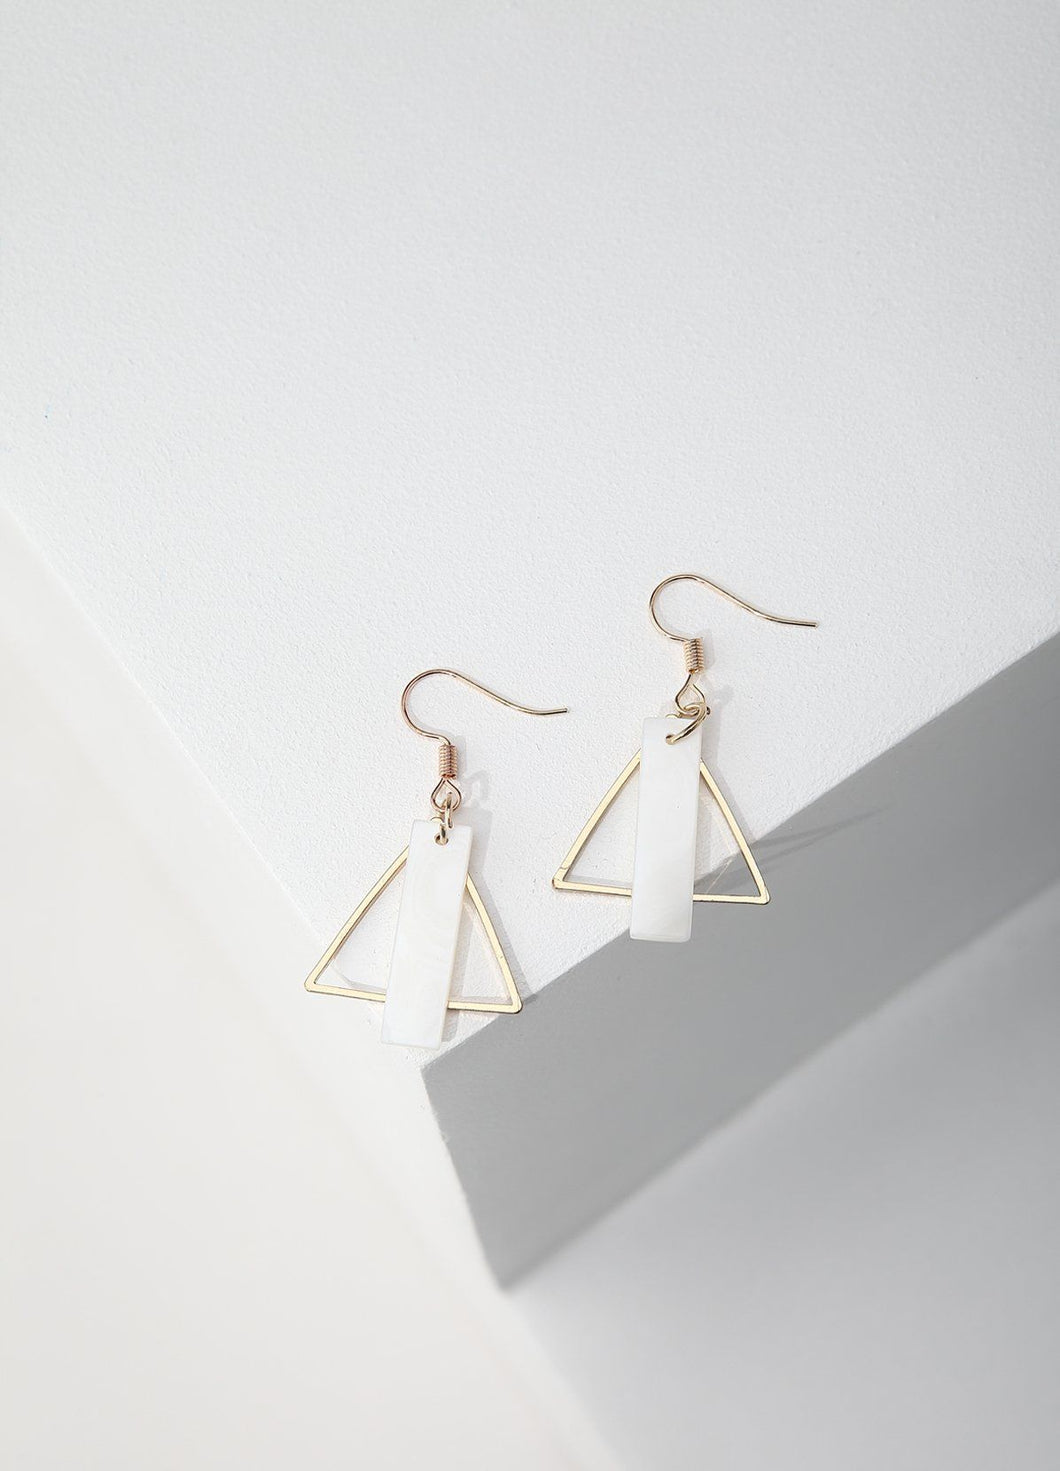 Geometry Rules Earrings Earrings - FIACCI